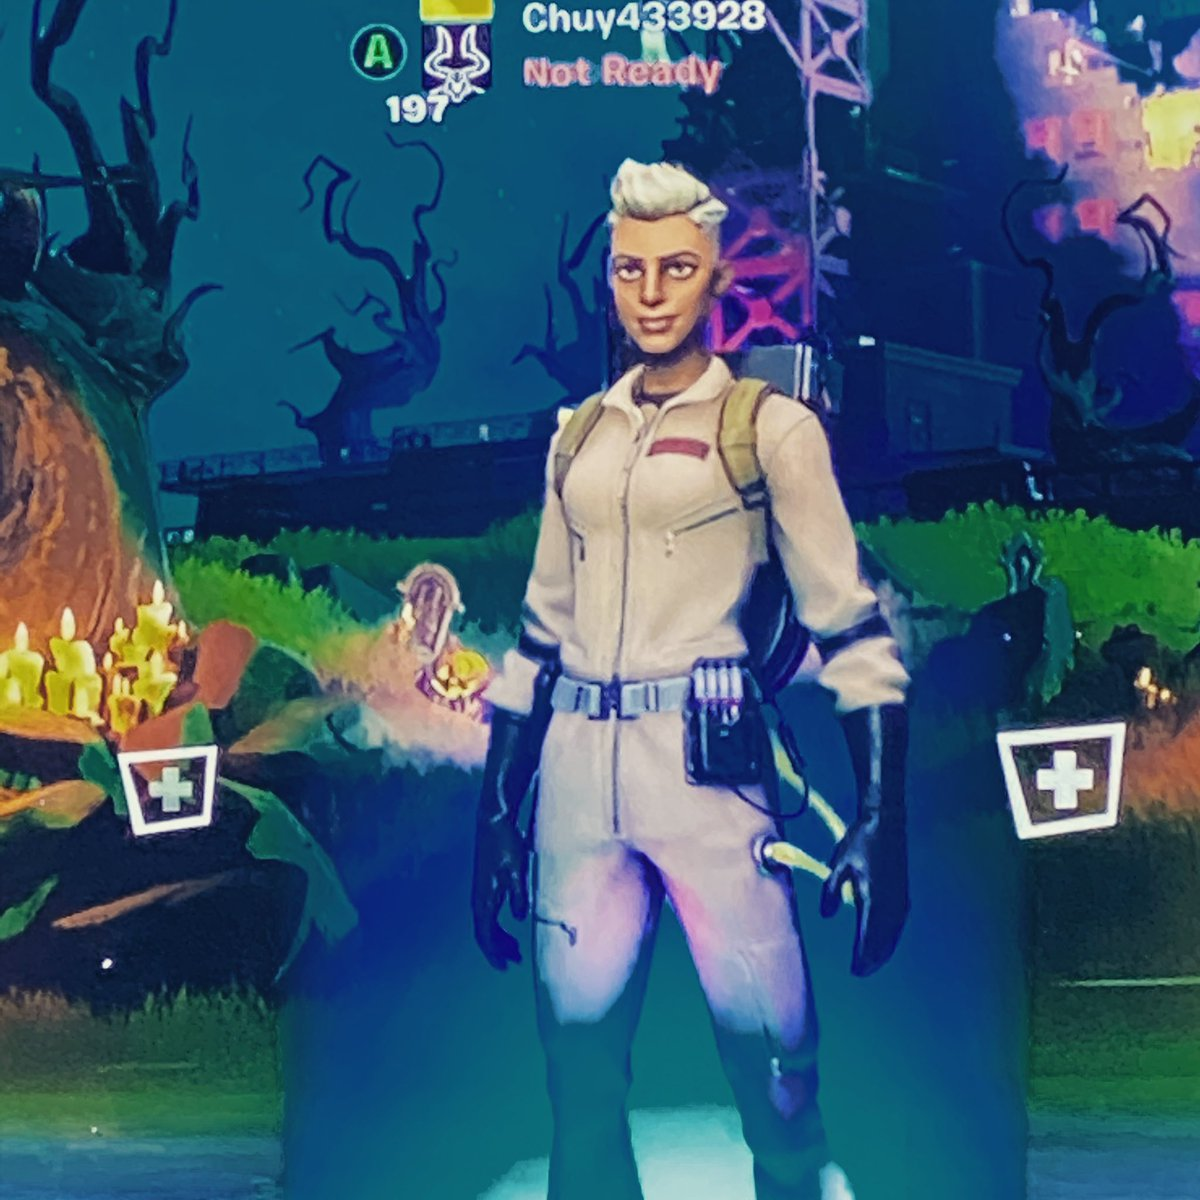 Going live on twitch link in the bio come chat and join plus update on big things comeing #fortnite #fortnitesolo #fortnitemares #twitch #twitchstreamer https://t.co/FFPbPPwGa4